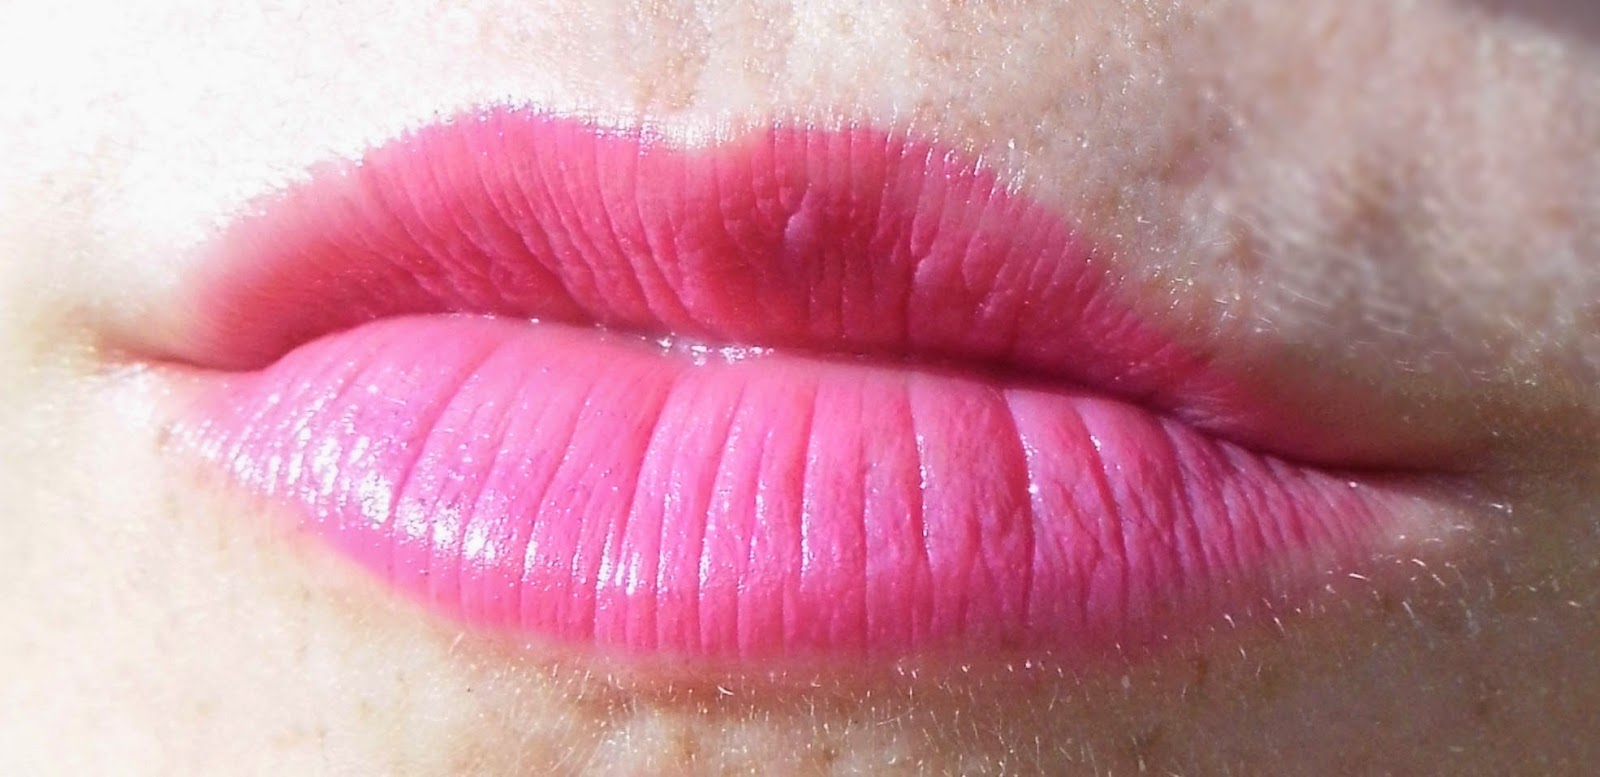 w7-cosmetics-kiss-lipsticks-pinks-fuchsia-picture-swatch